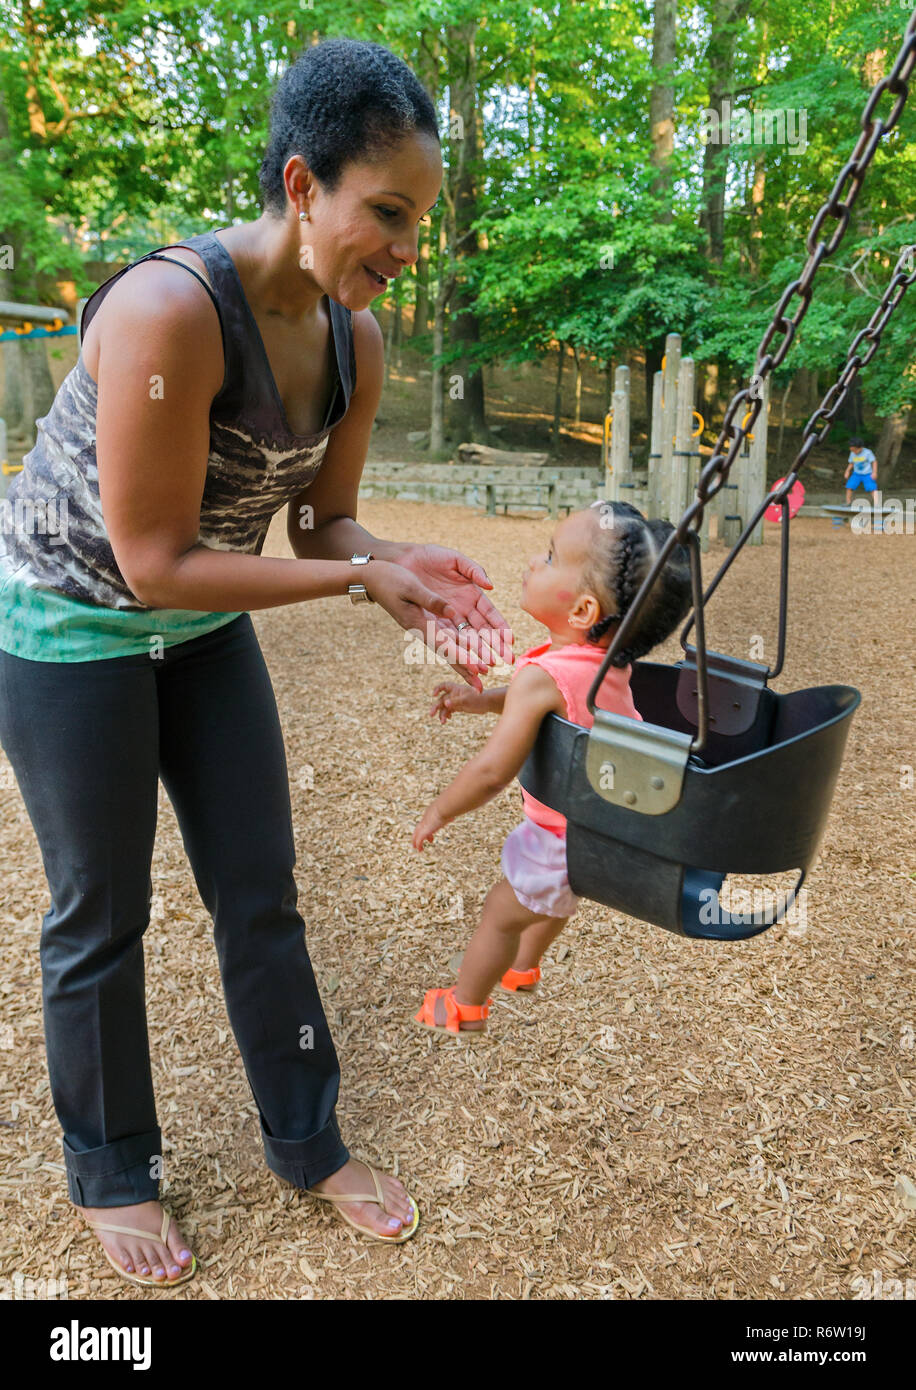 Nailah Wagner pushes her daughter, 10-month-old Emery Wagner, in a swing at Candler Park, June 4, 2014, in Atlanta, Georgia. - Stock Image